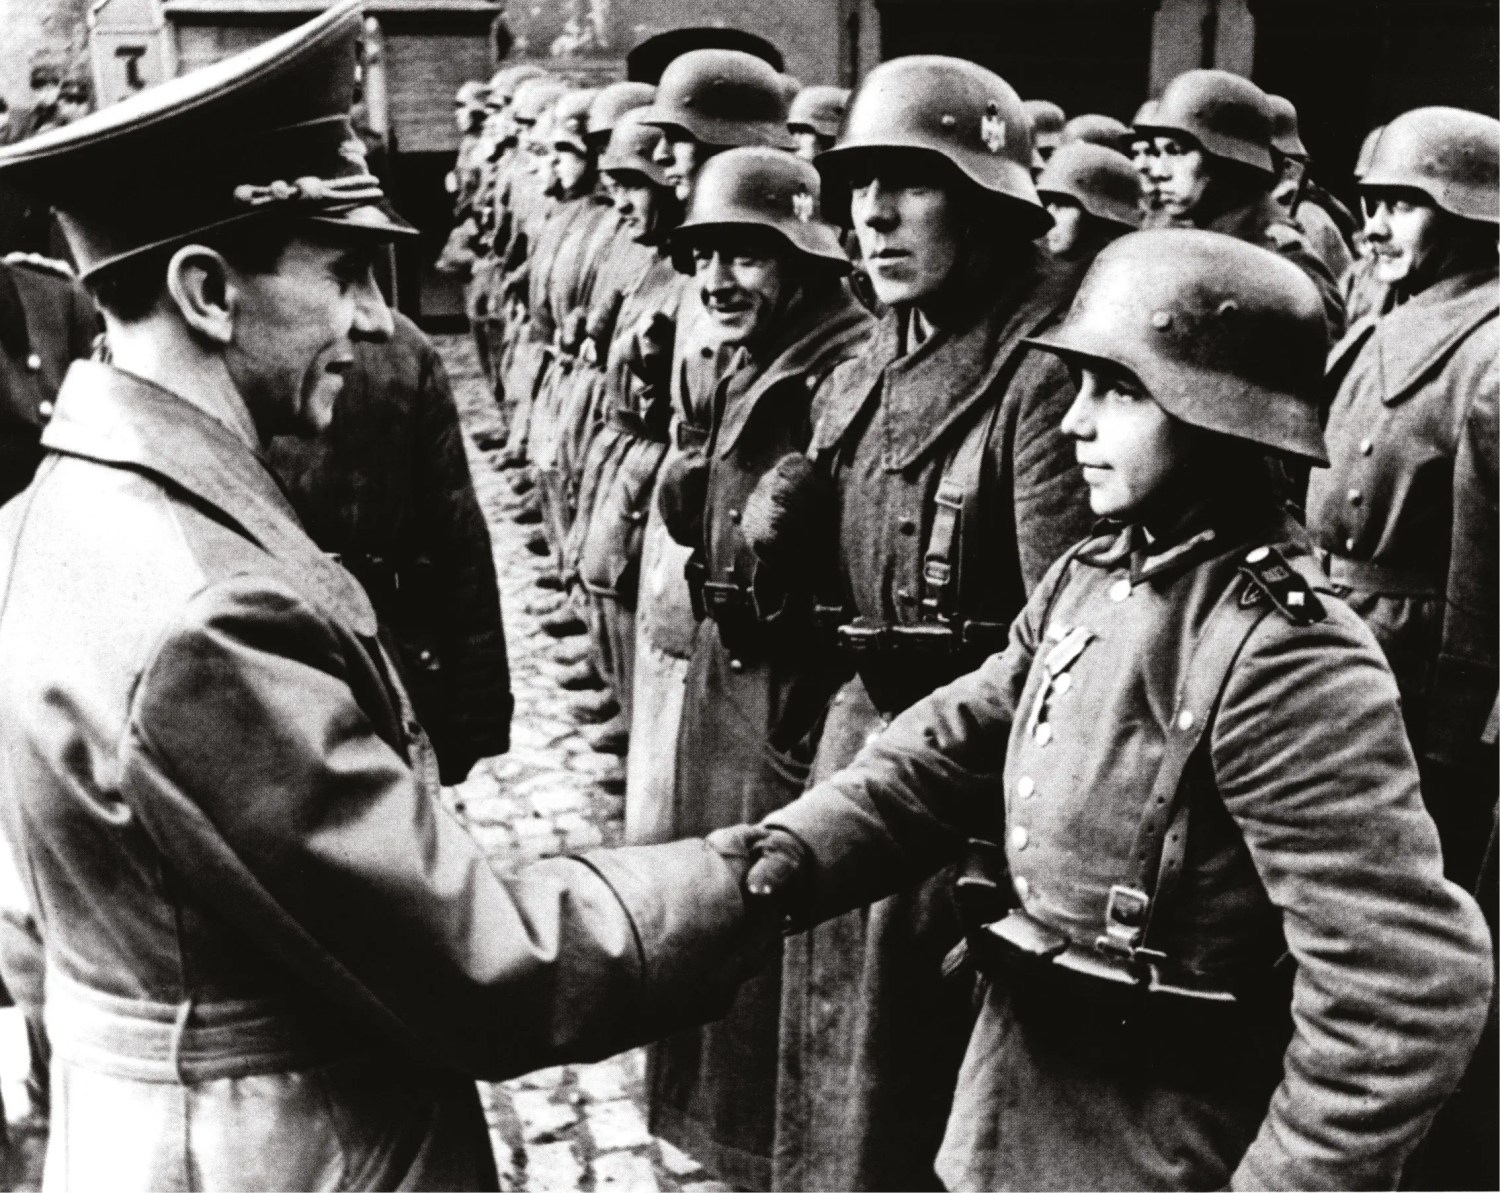 BELOW Goebbels inspects some of the last defenders of the Third Reich.